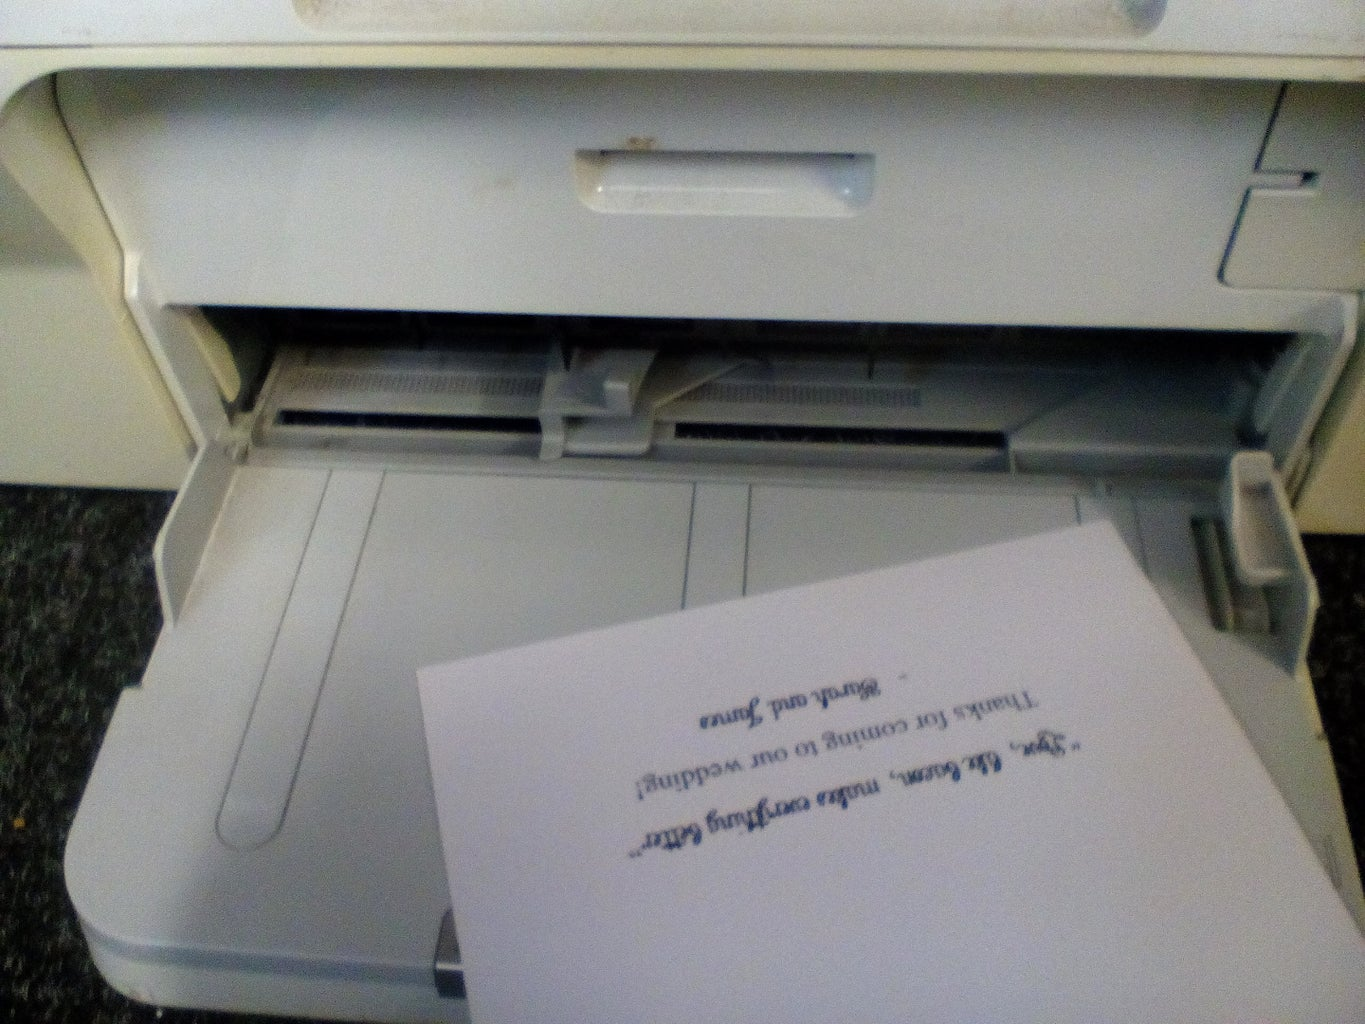 Print Your Fortunes (or Quotes, or Whatever!)